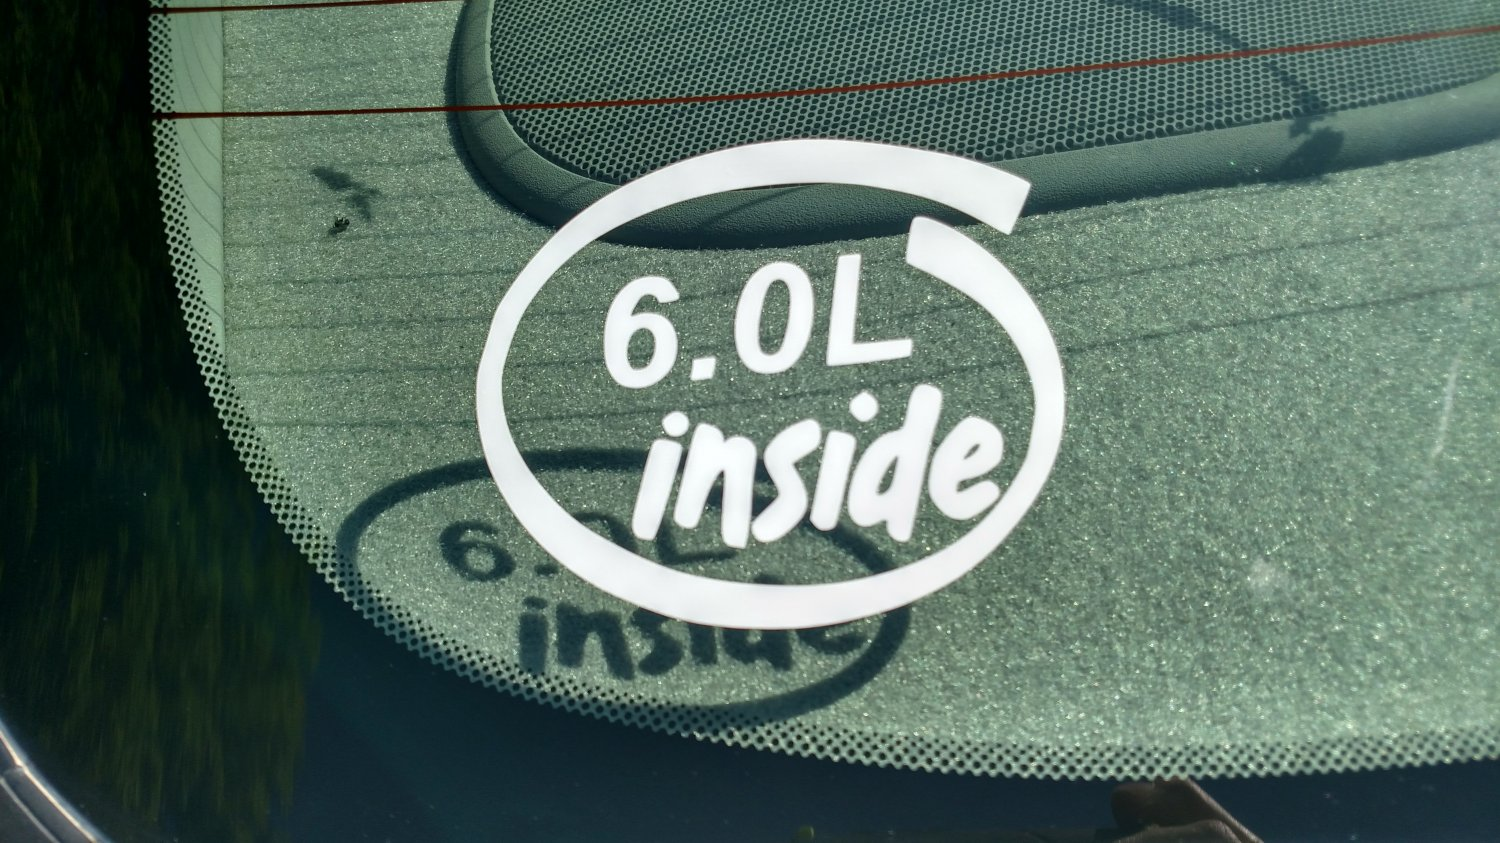 6.0L Inside Vinyl Car Window Bumper Sticker Decal Laptop 6.0 GM Vortec Ford L96 LS